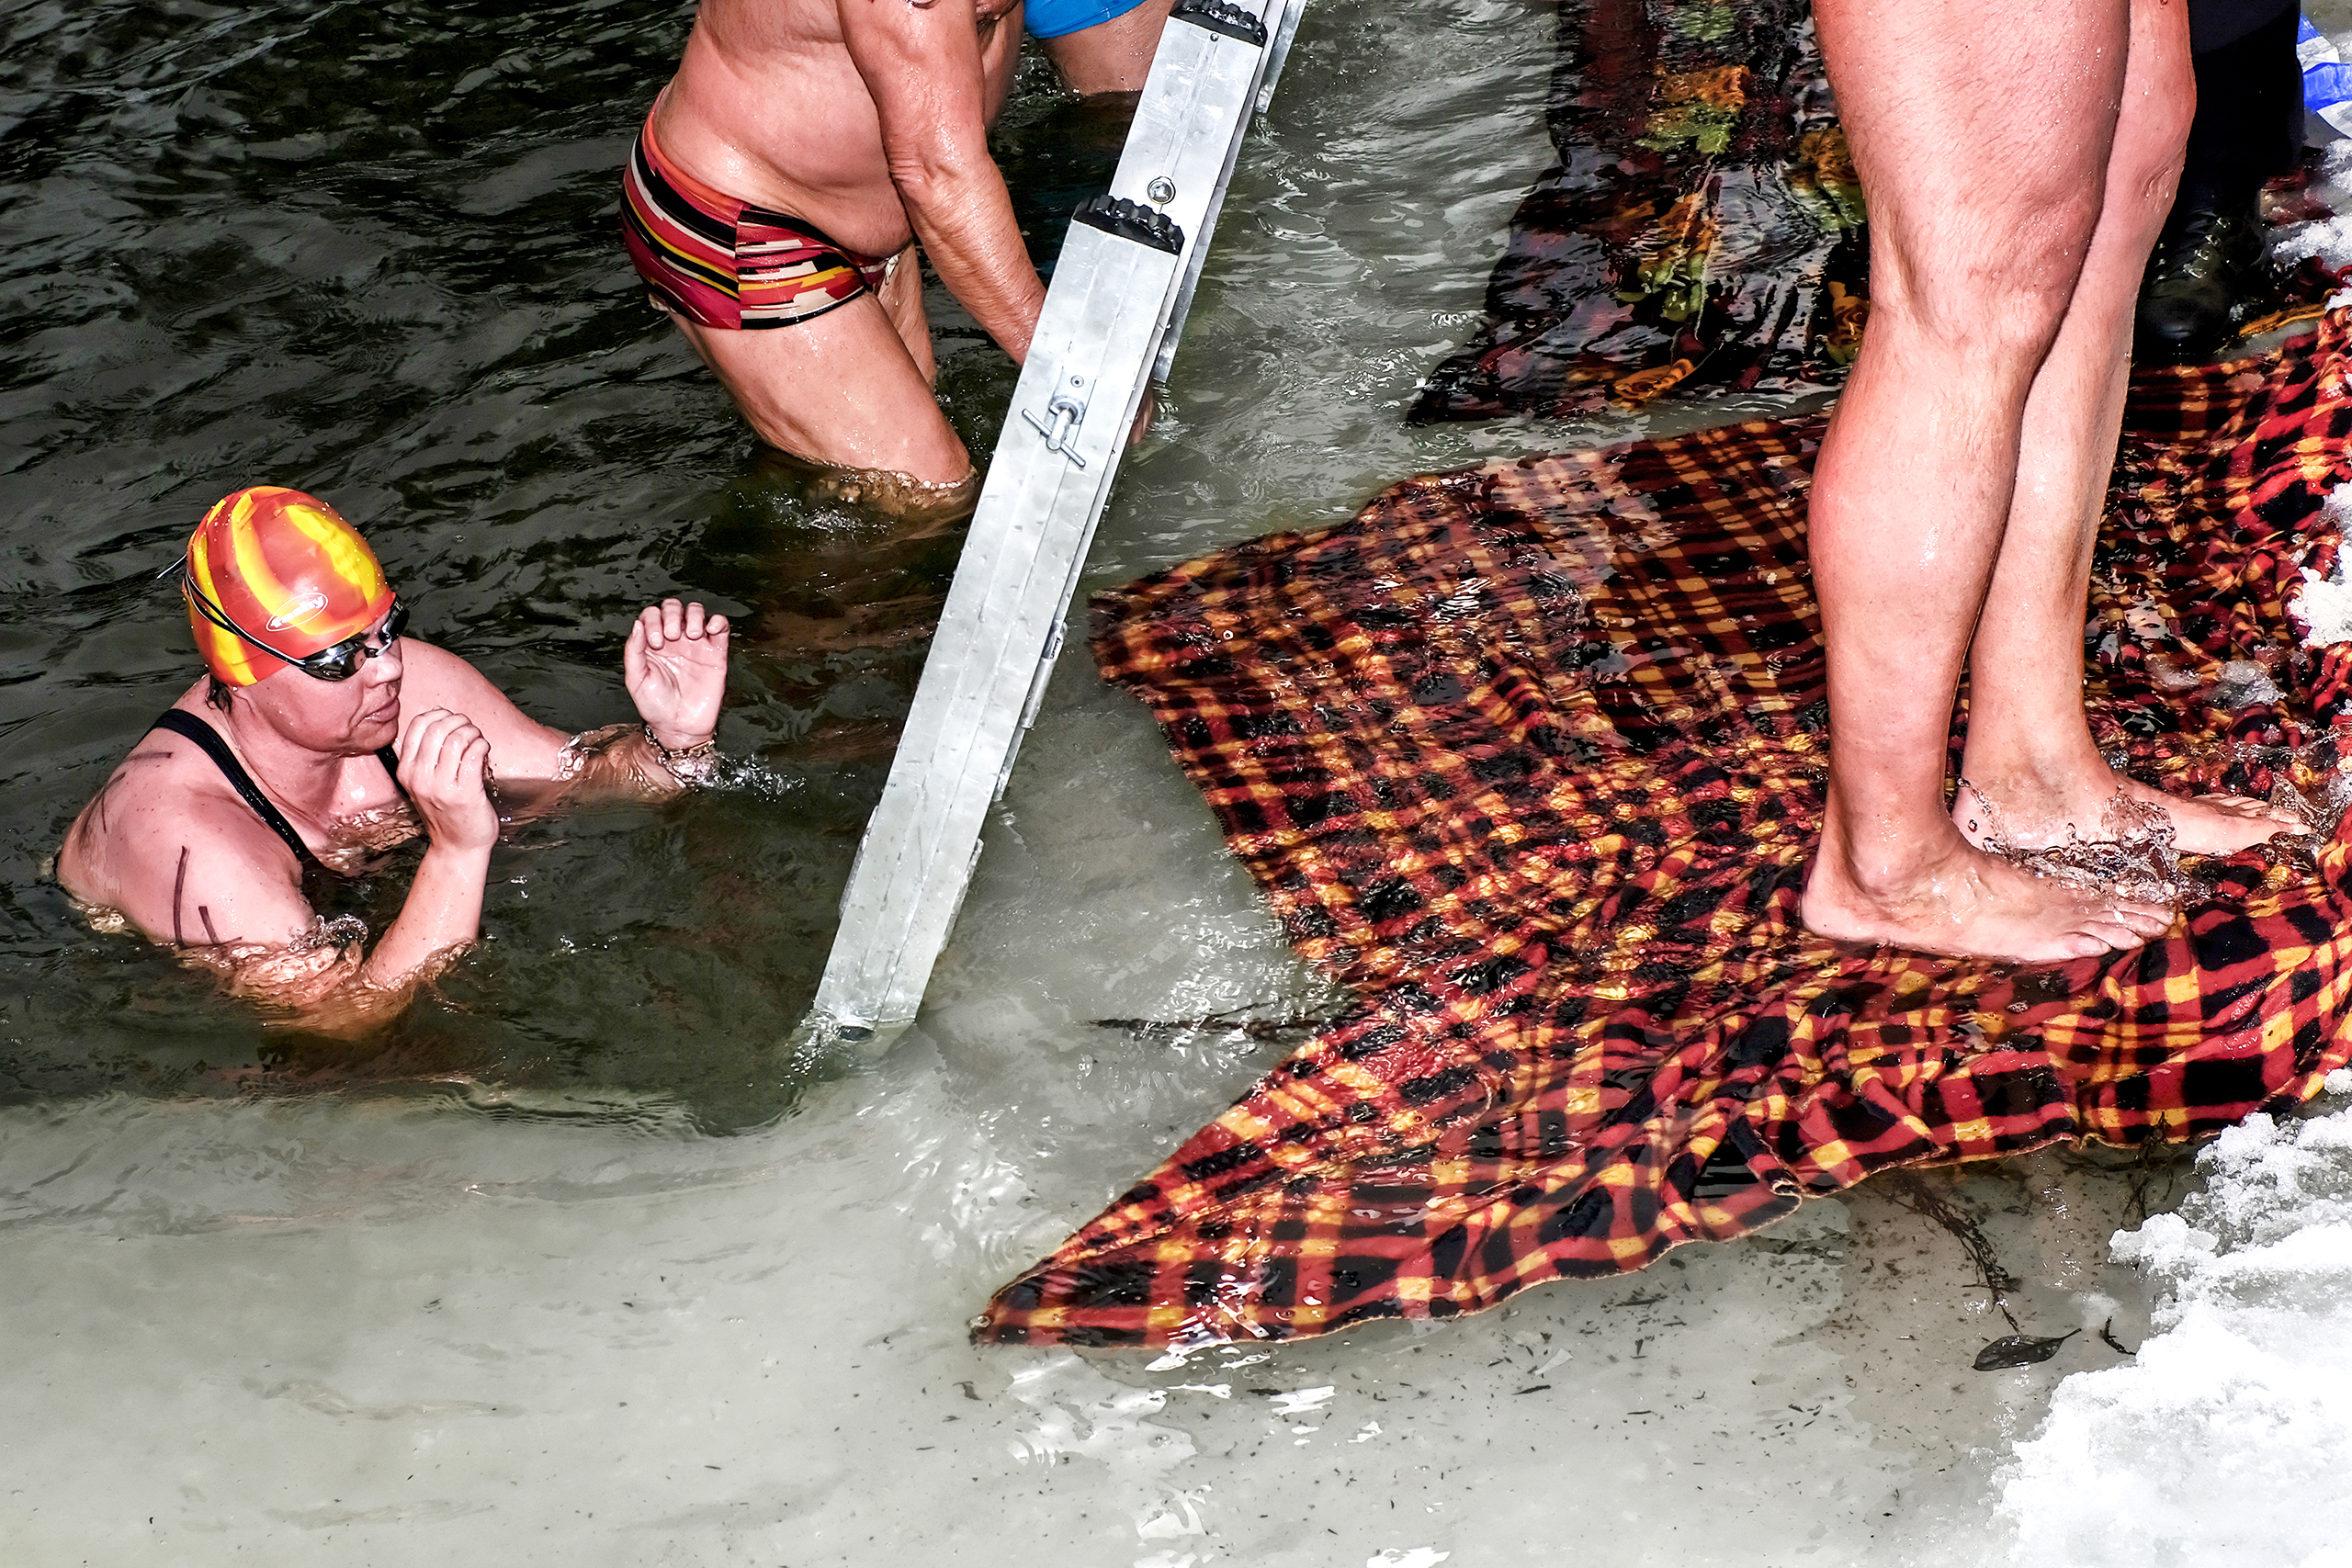 Blankets like this one, pictured on Feb. 18 2017 by a pond in Sázava, in the Czech Republic, prevent cold water swimmers from slipping on slippery ice.